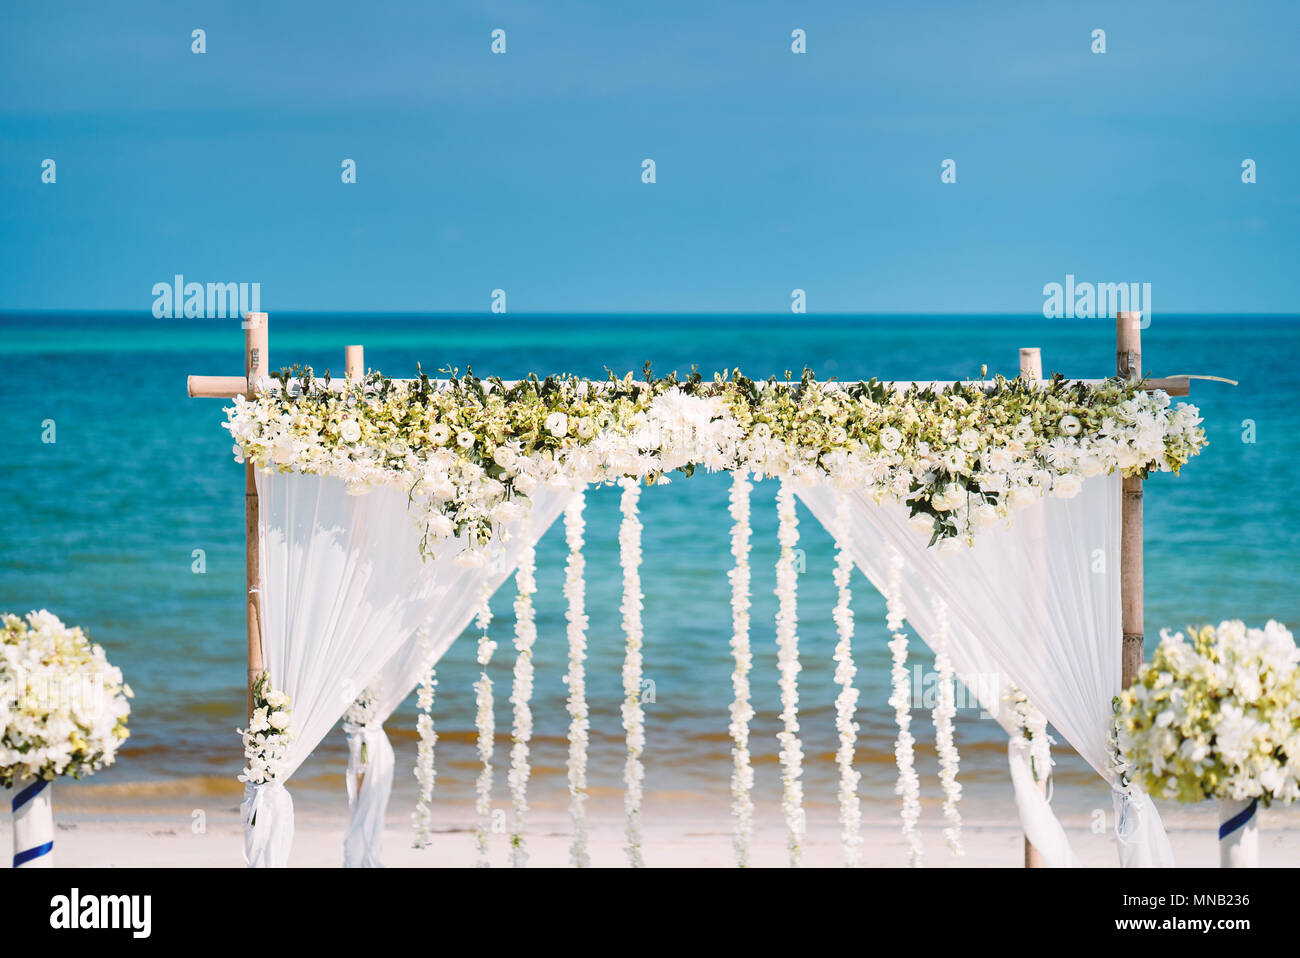 The Beautiful Wedding Venue Setting With White And Green Flowers